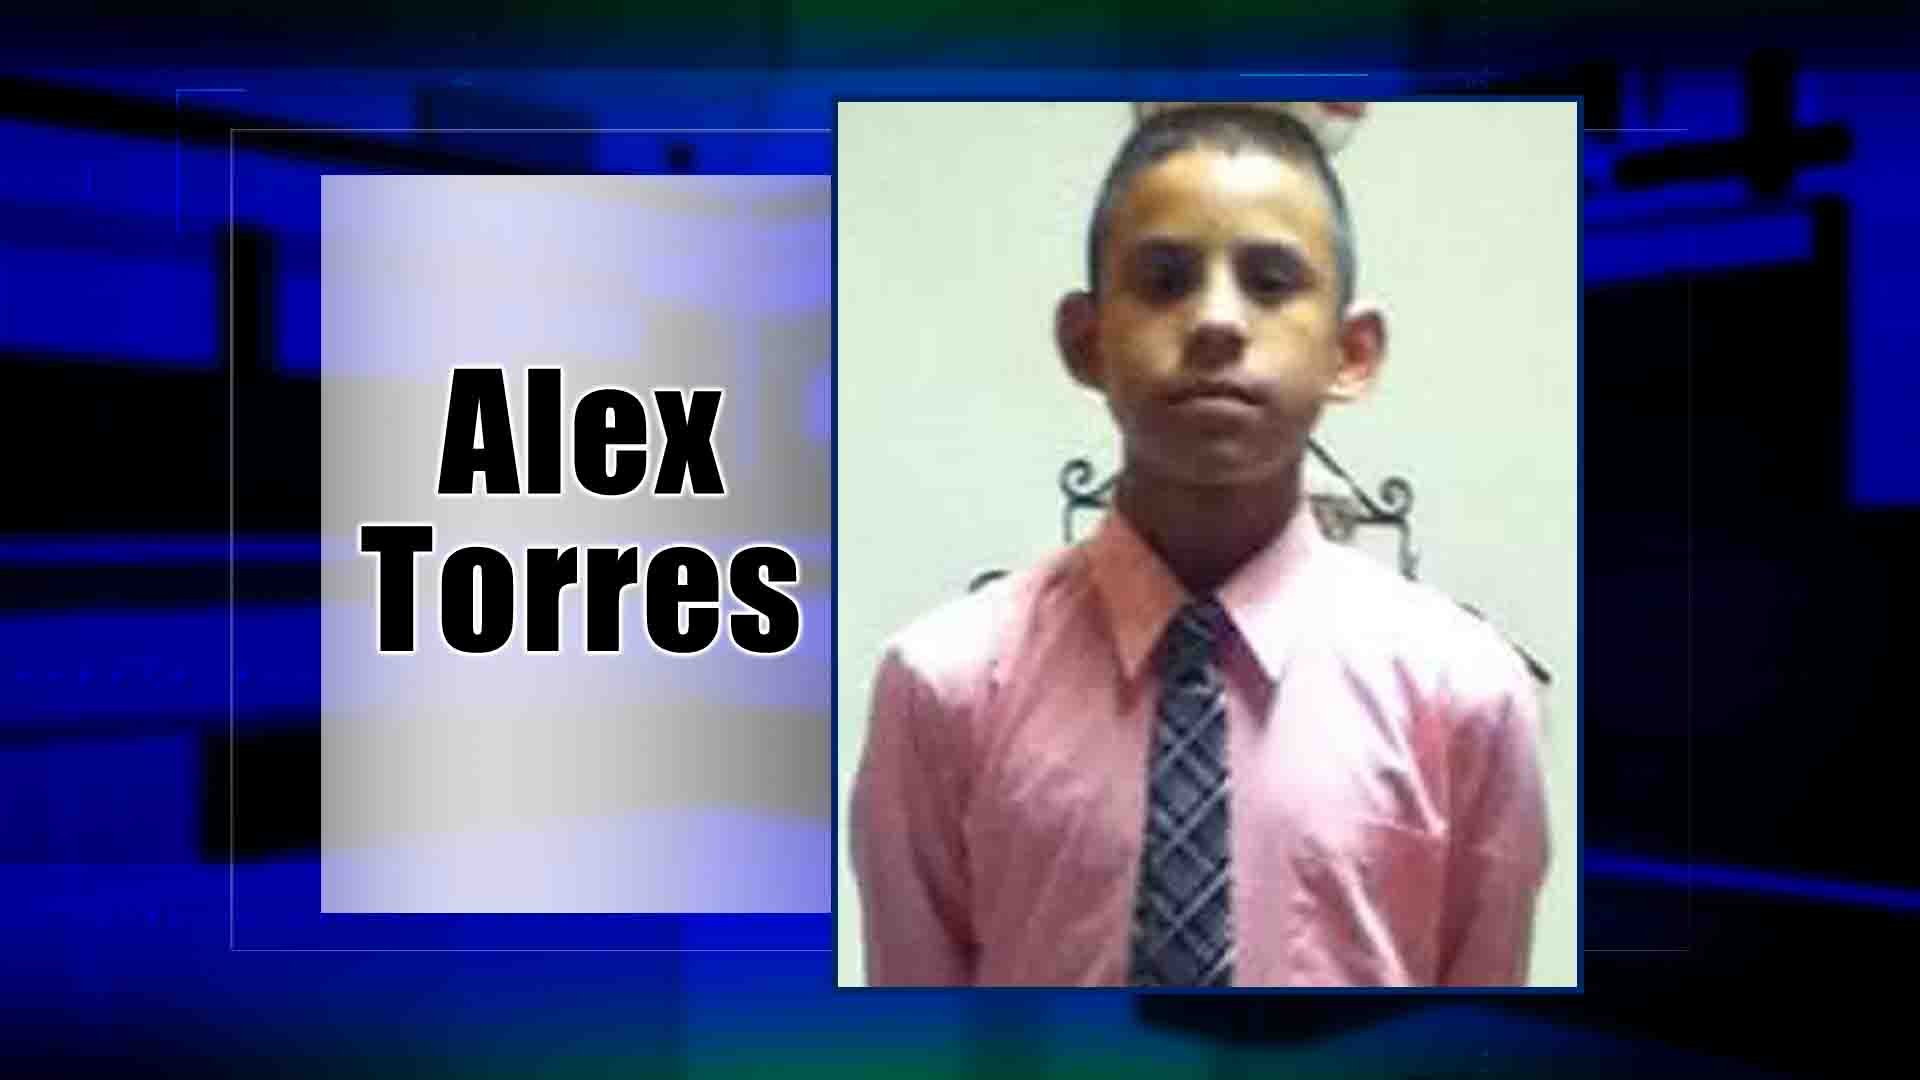 13-year-old Alex Torres was shot and killed by mistake in 2015.